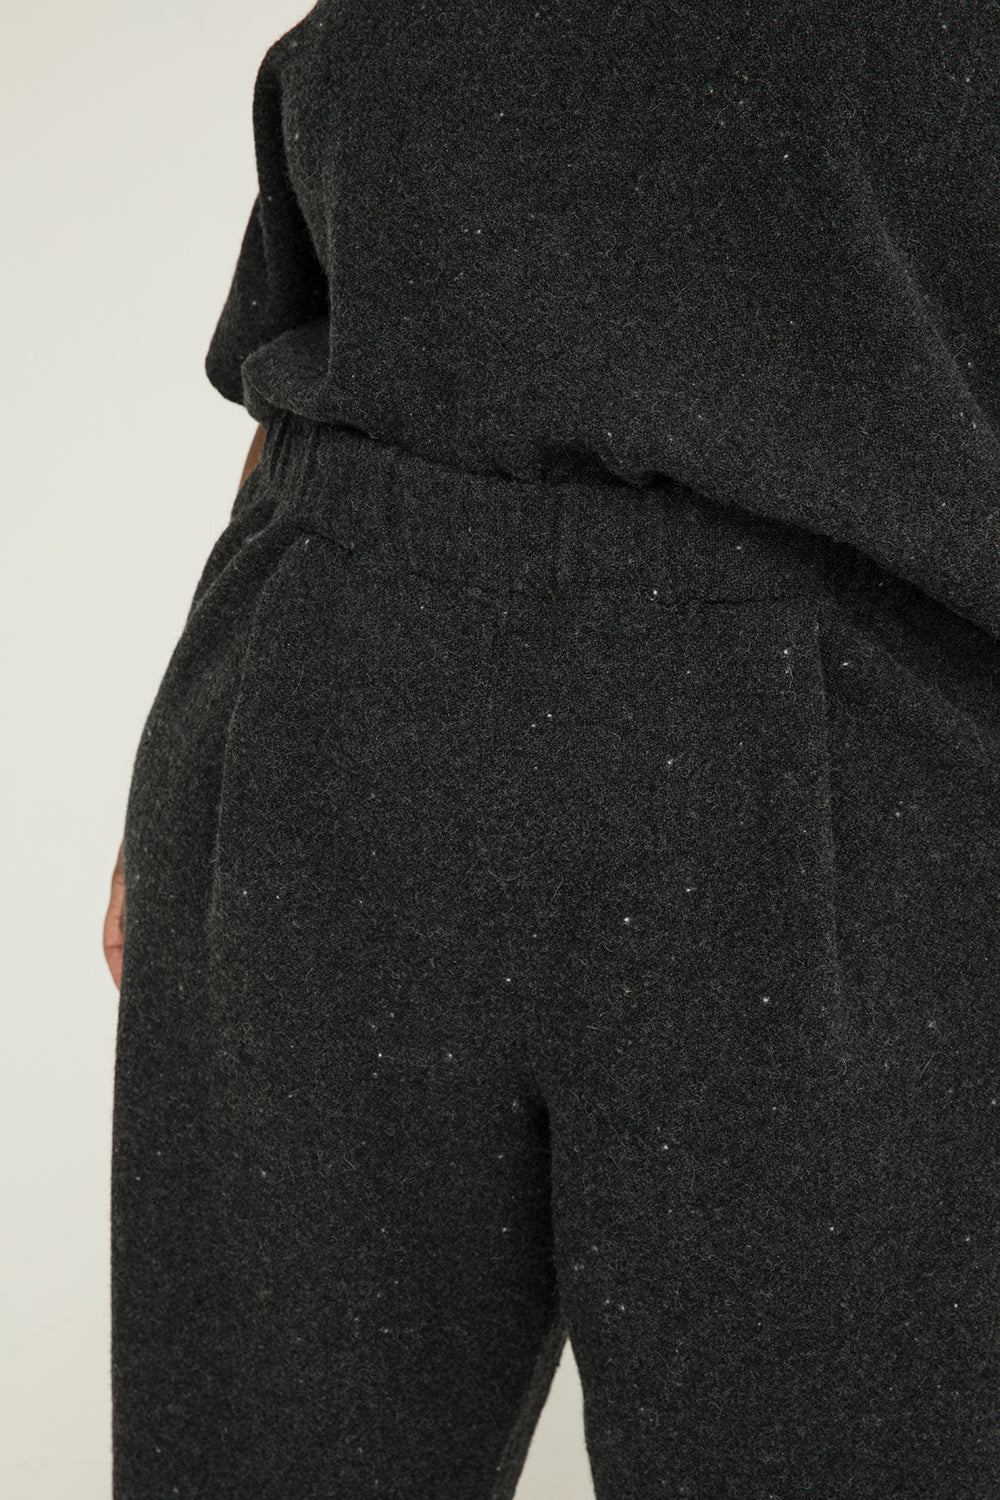 Andy Trouser in Lightweight Wool Charcoal - Alex-3XL Regular